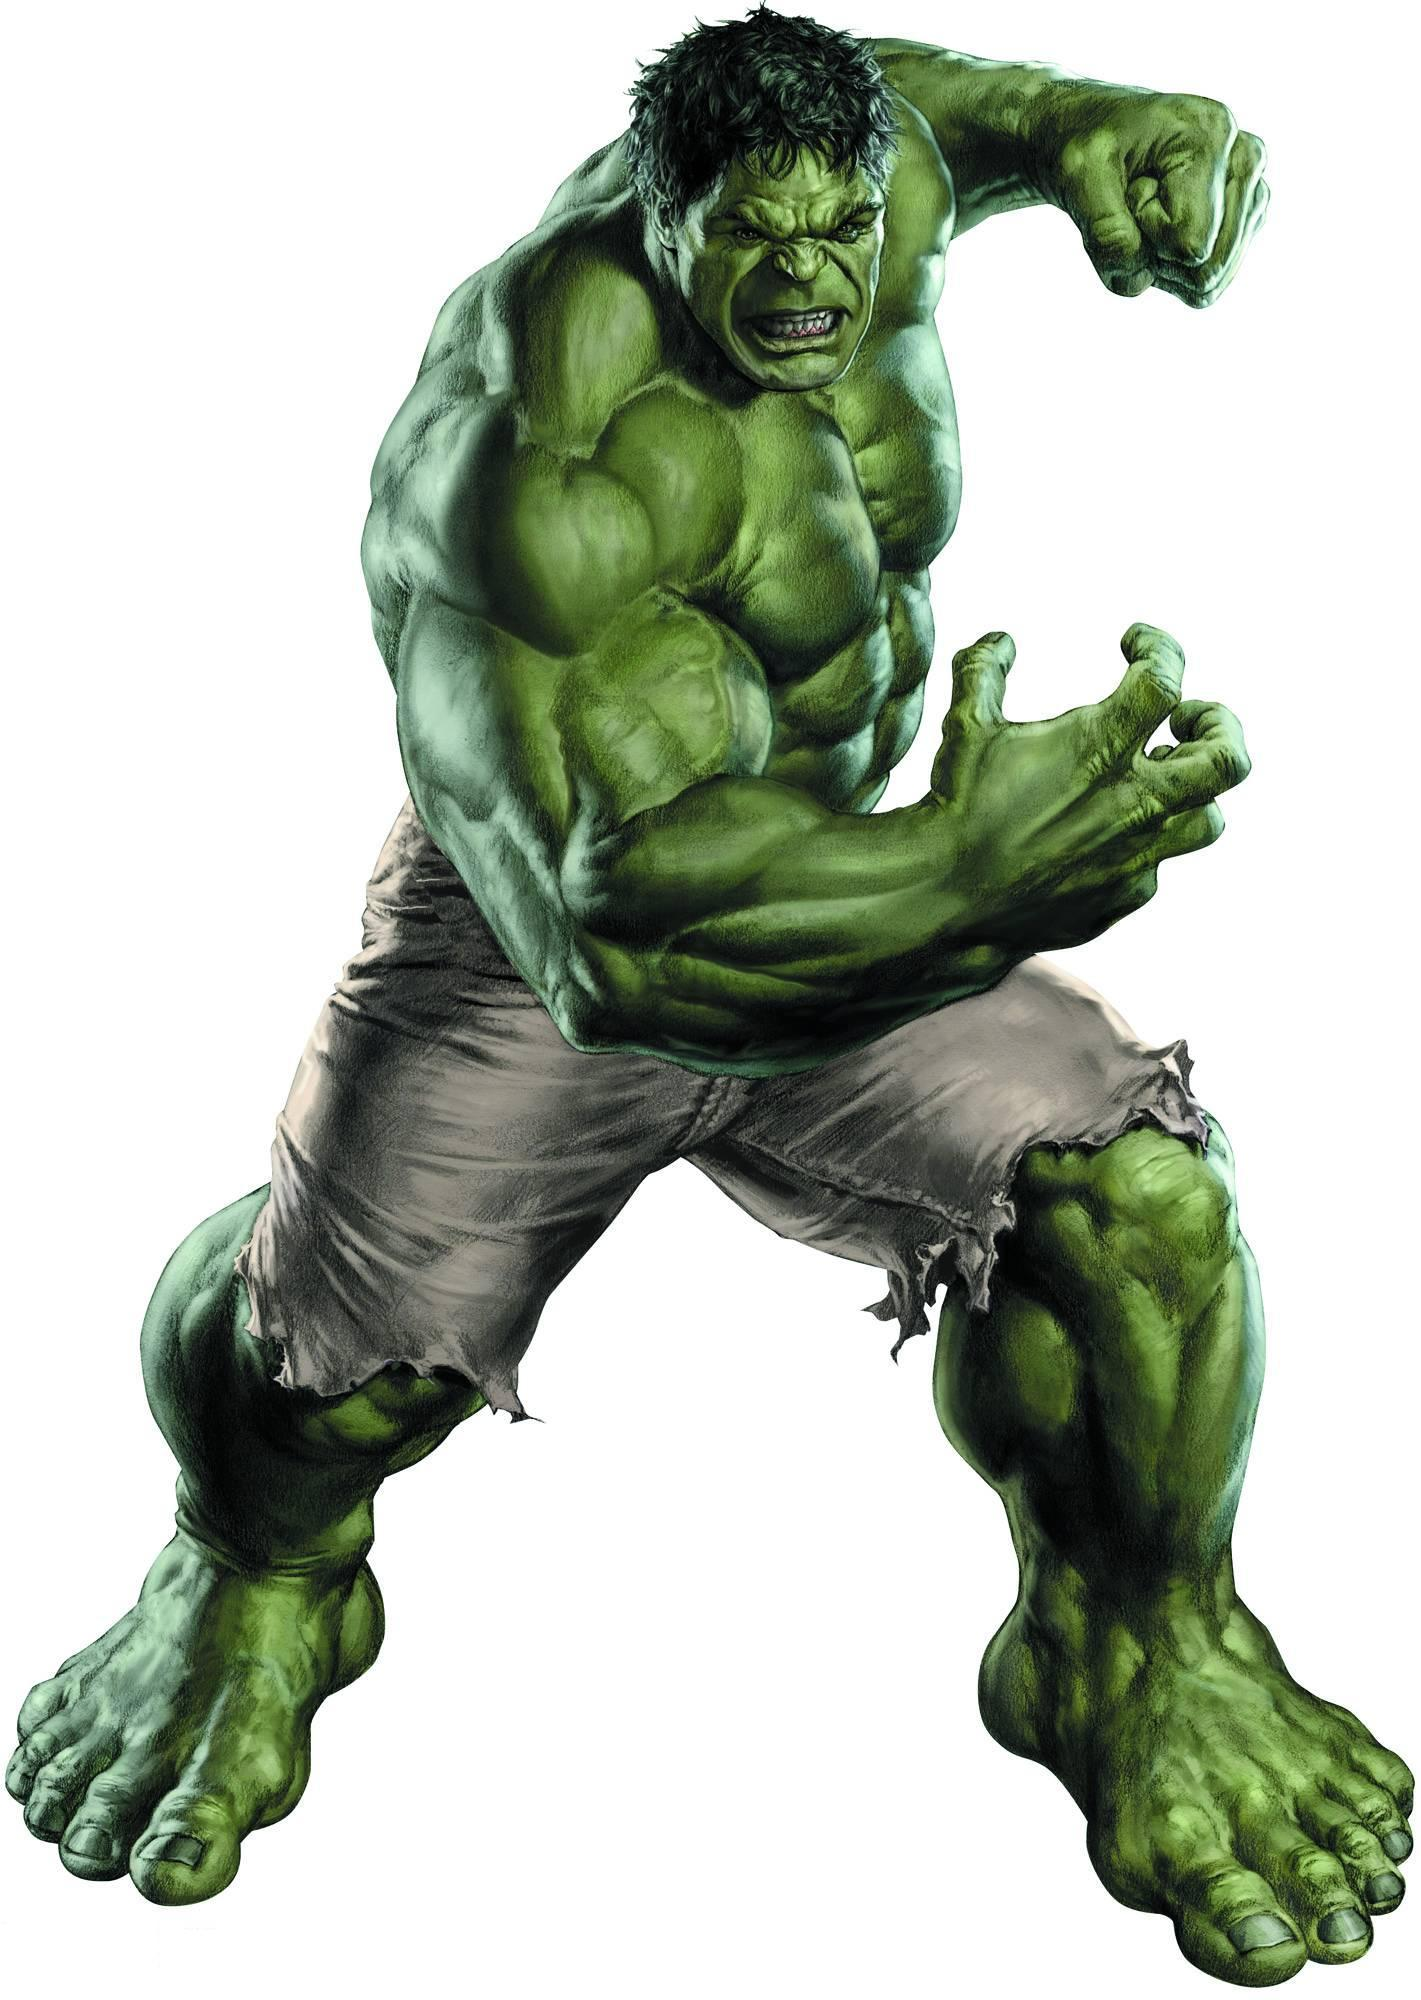 Hulk Green-Skinned Monster 833.4 Kb